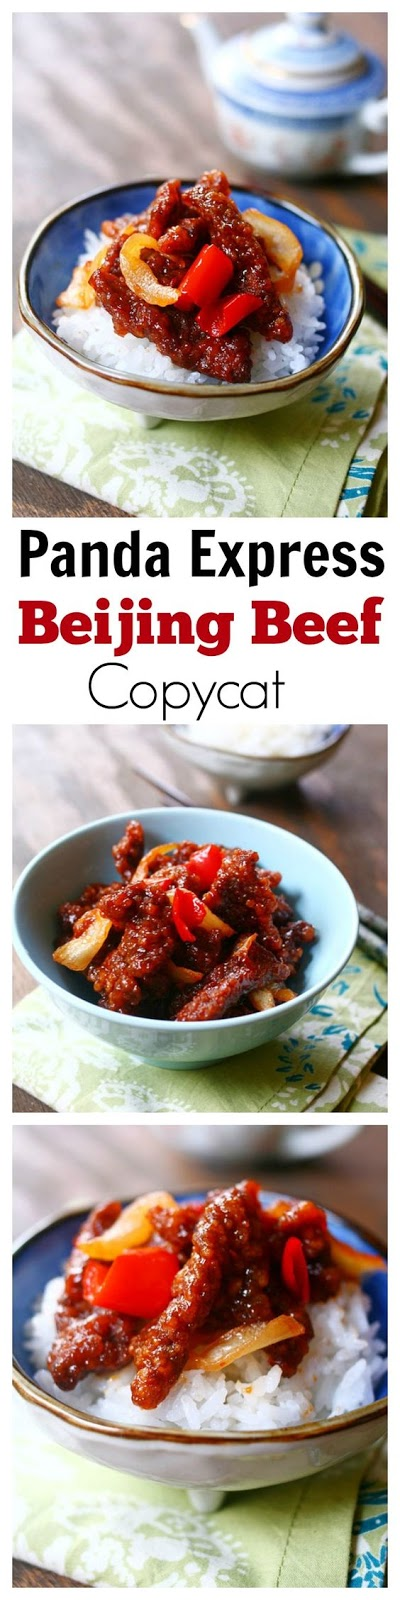 Panda Express Beijing Beef Copycat – the most delicious Beijing Beef that tastes exactly like Panda Express, but healthier and much better than takeout | rasamalaysia.com